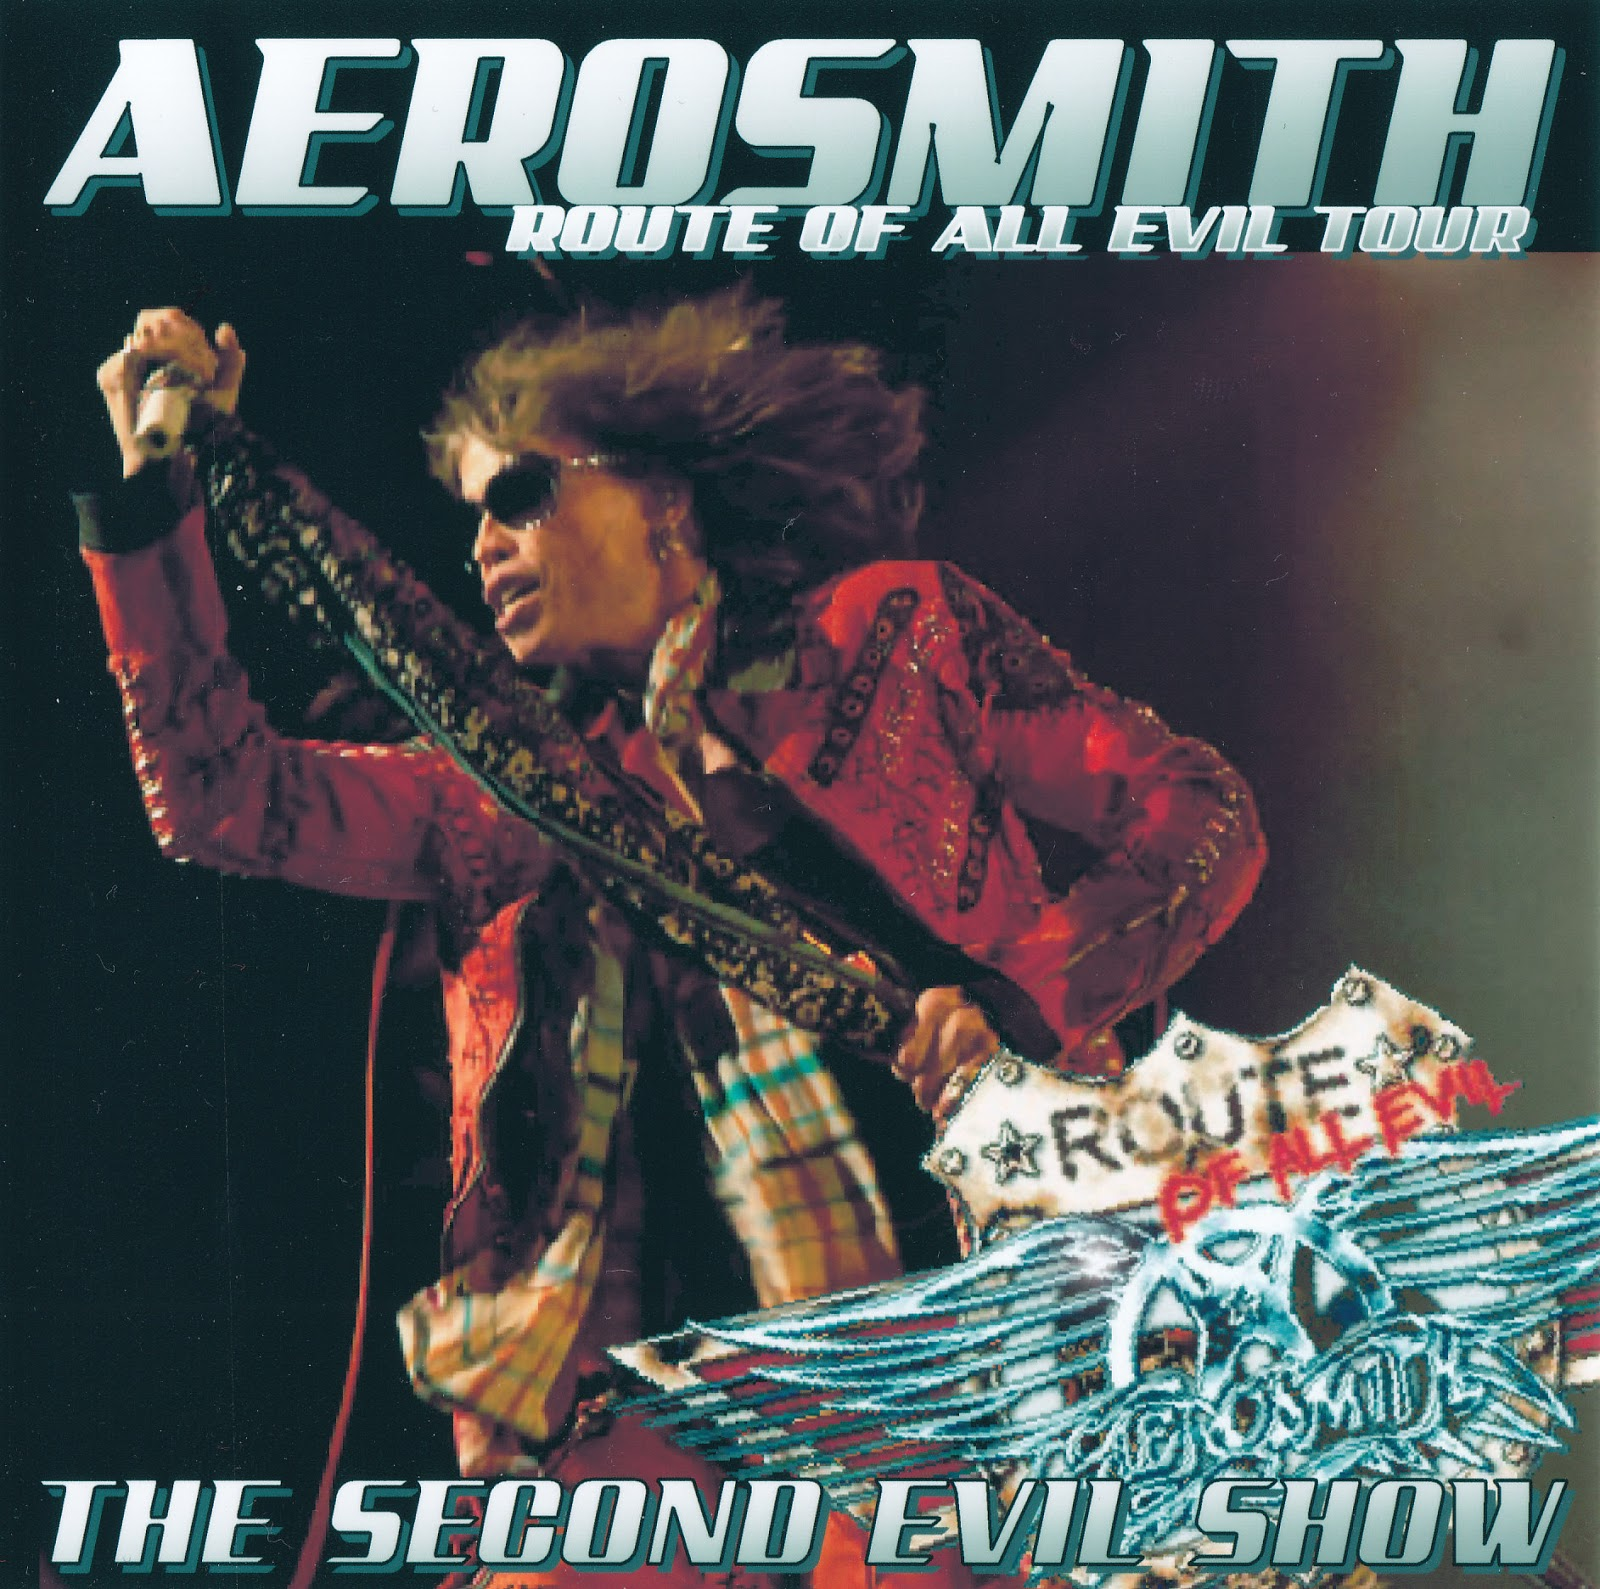 Aerosmith Bootlegs Cover Arts The Second Evil Show